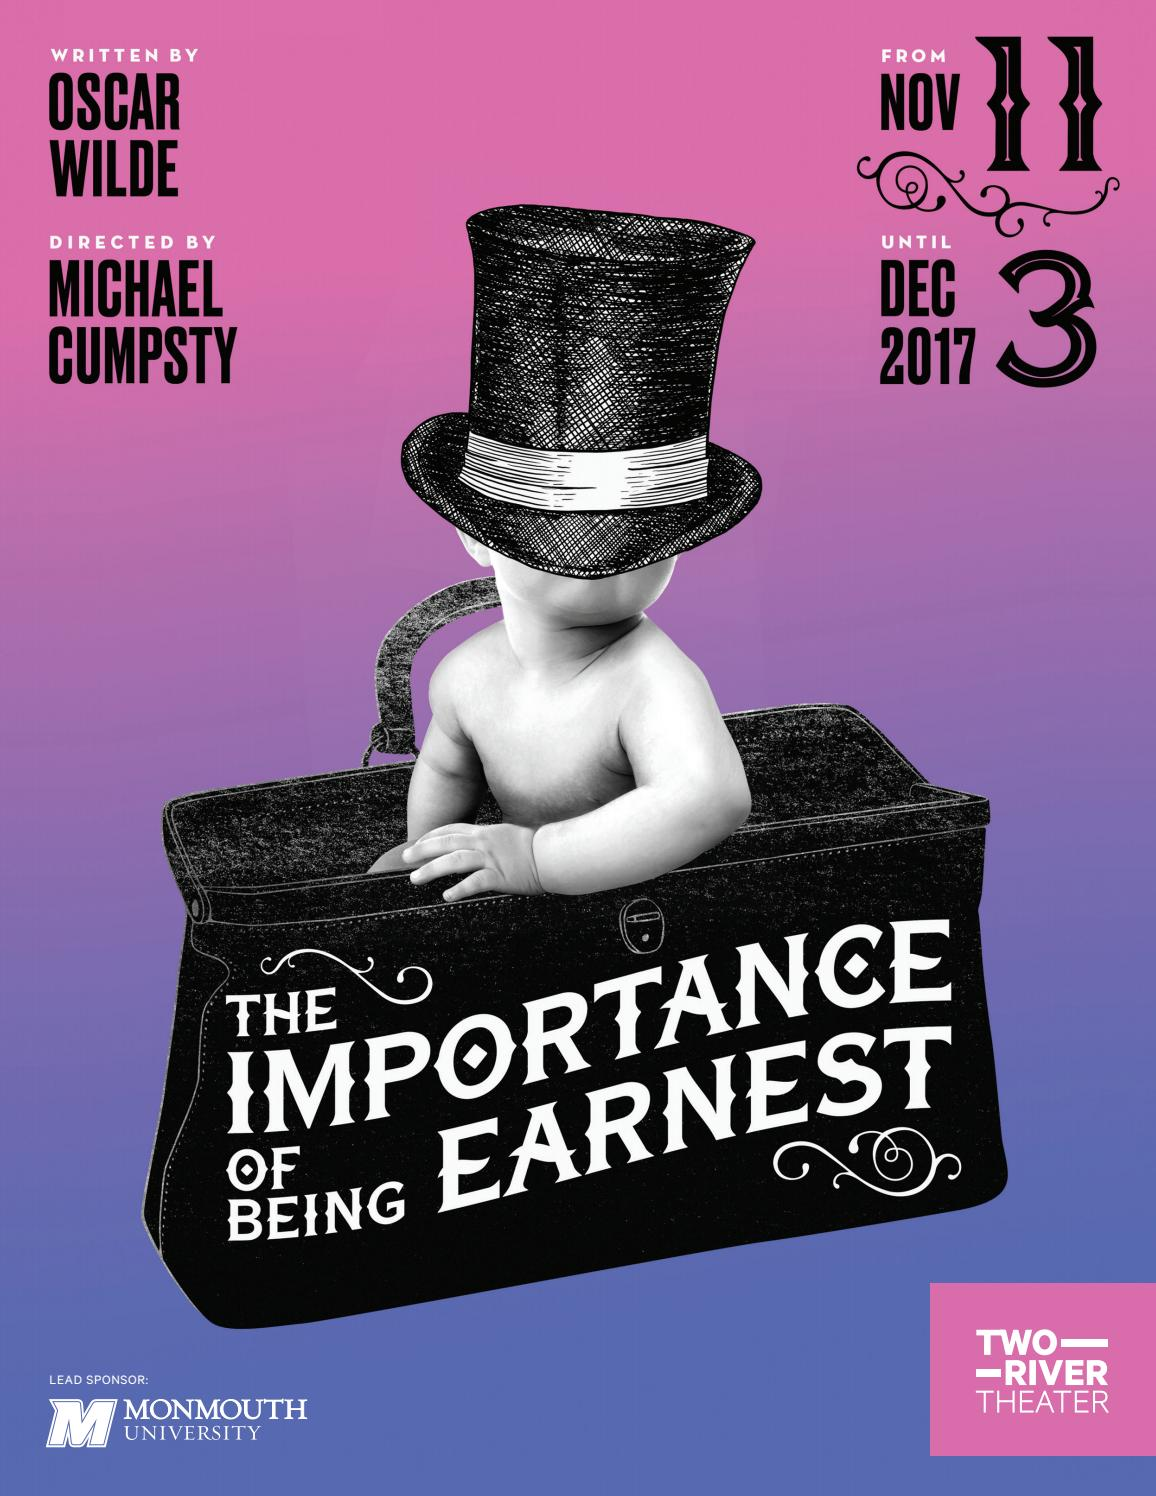 why play importance being earnest still packing theaters t Free oscar wilde importance of being earnest of being earnest helped to revive the theater tradition of of the most important props in the play.